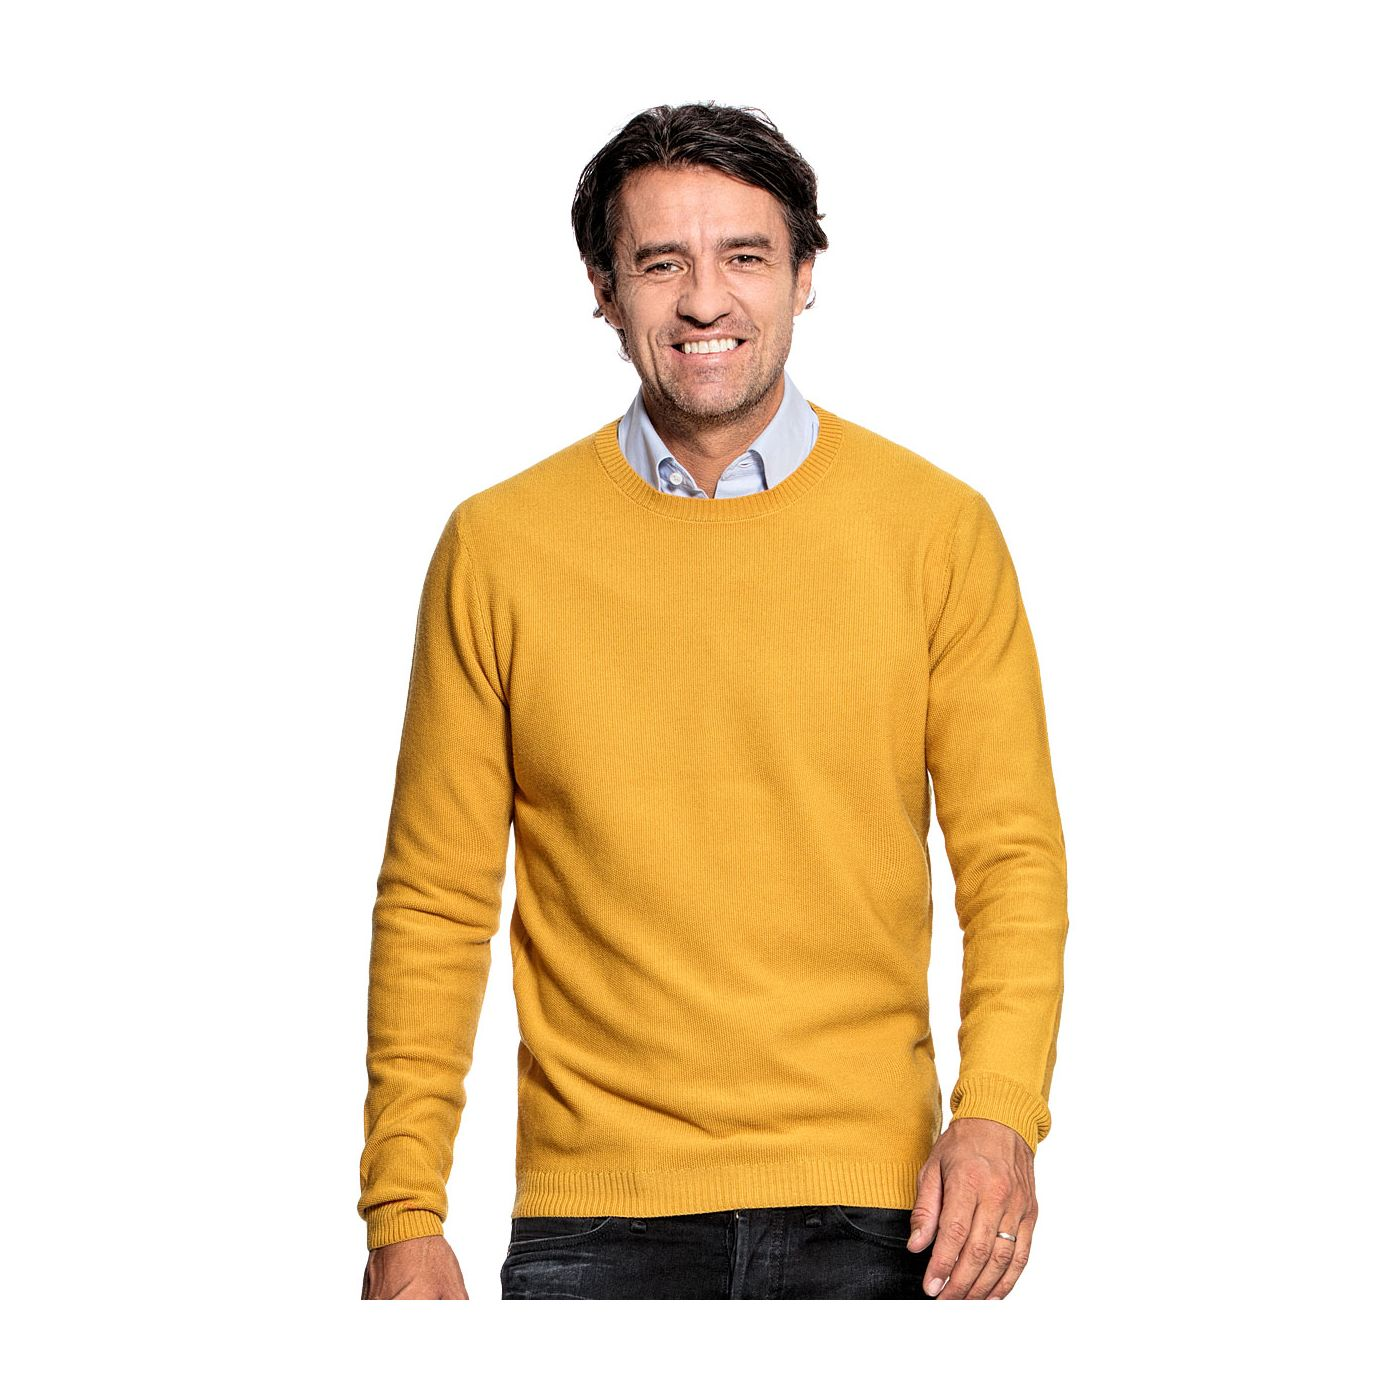 Honeycomb knit sweater for men made of Merino wool in Yellow